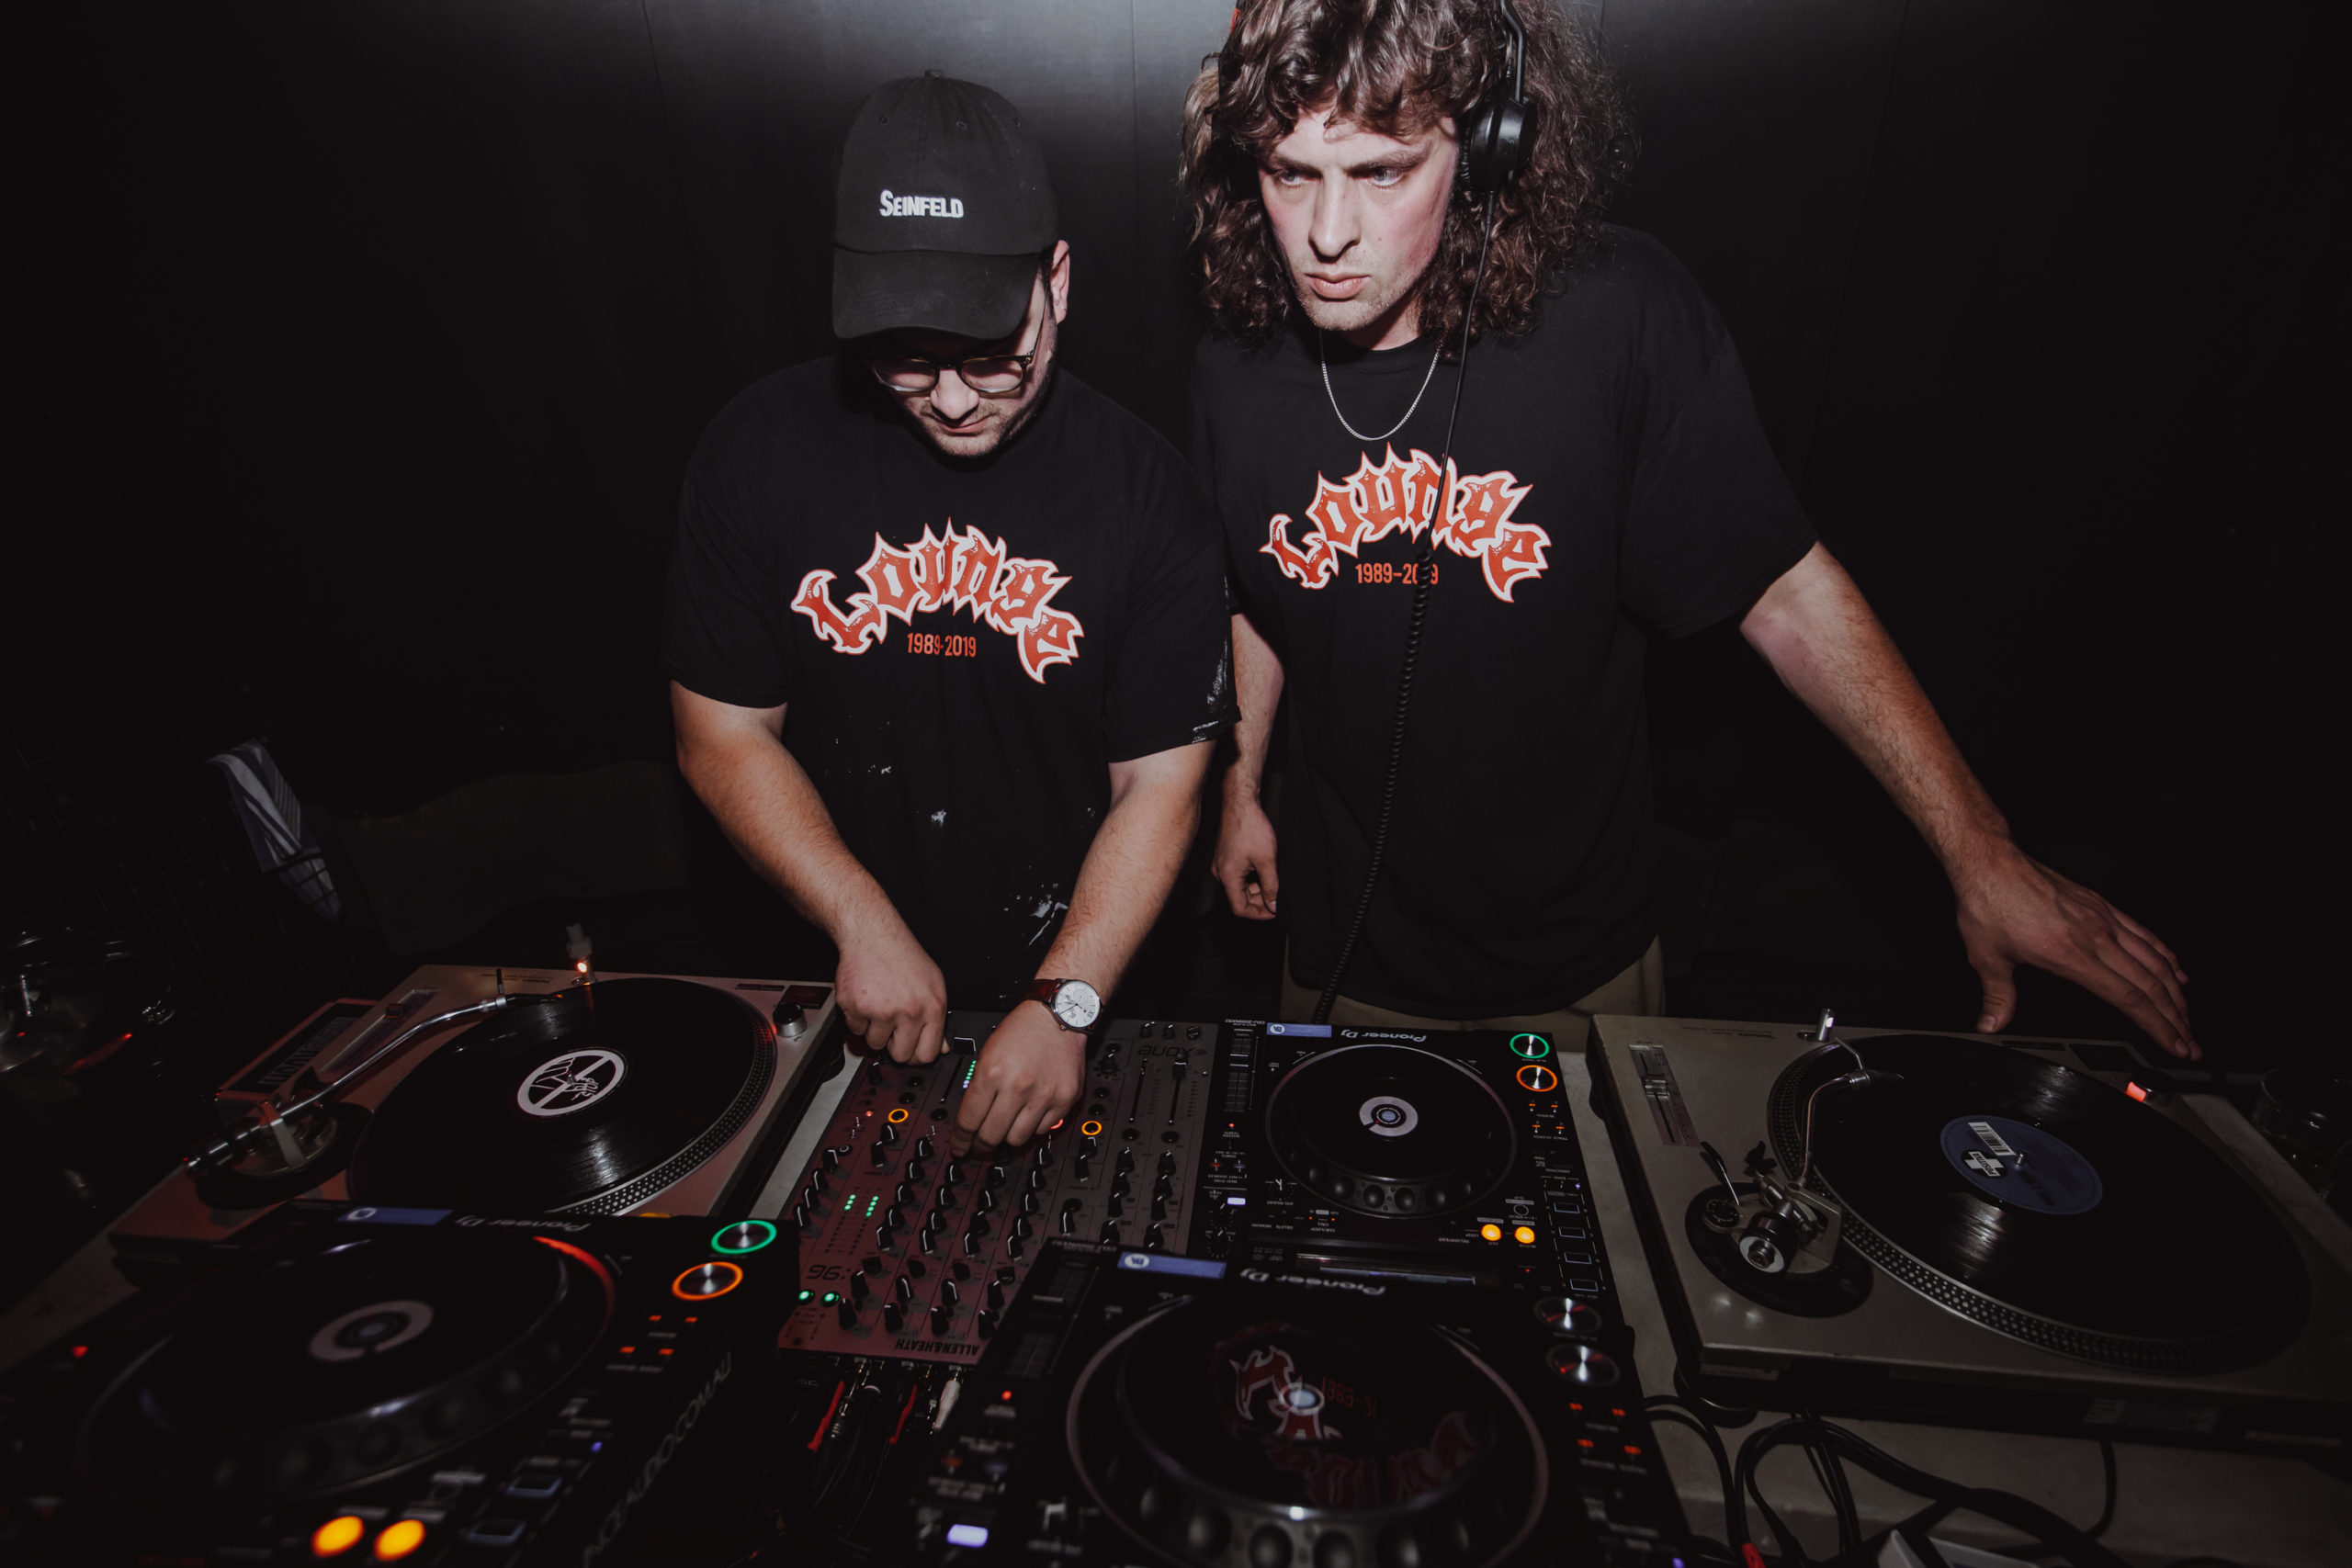 Directors of Melbourne nightclub fear COVID-19 could destroy local music industry